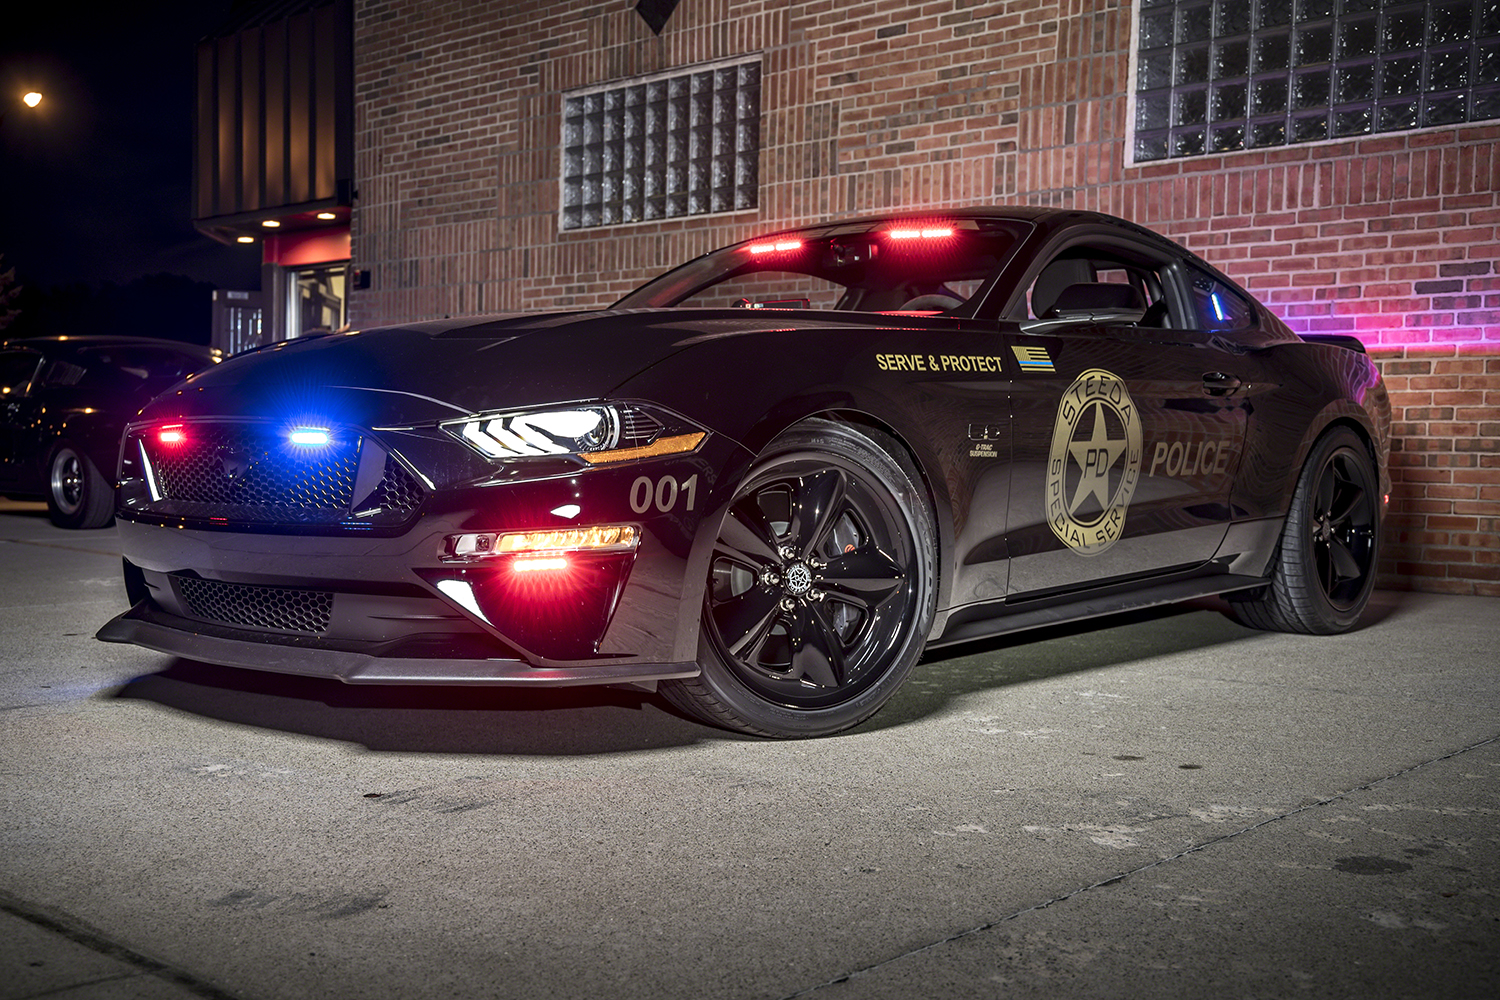 Specs Of 2020 S Pursuit Rated Police Fleet Vehicles The Steeda Special Service Mustang Officer